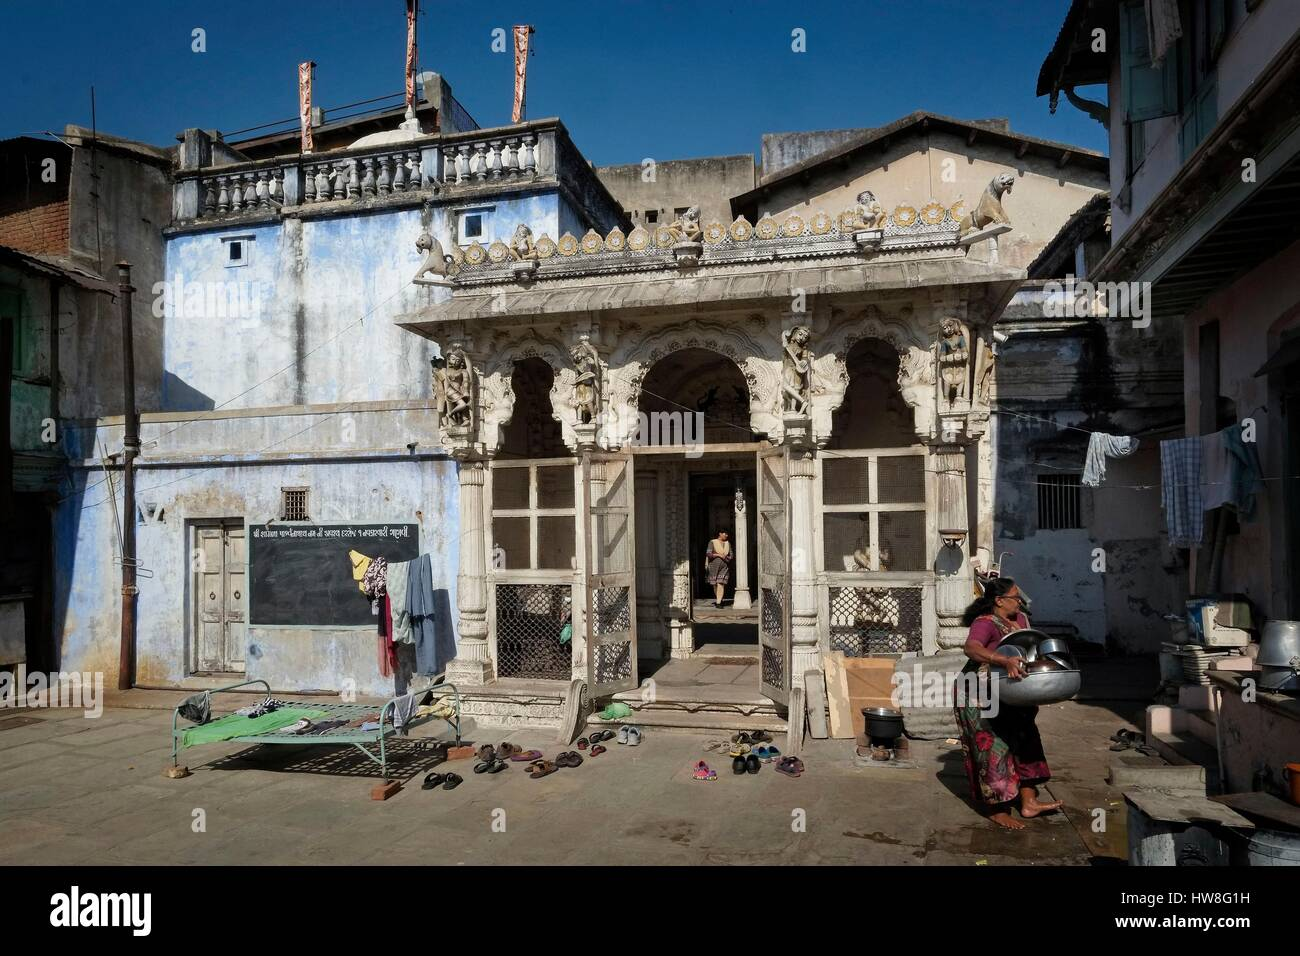 India, Gujarat State, Ahmedabad, listed as World Heritage by UNESCO, old houses in the historic center of Ahmedabad, - Stock Image